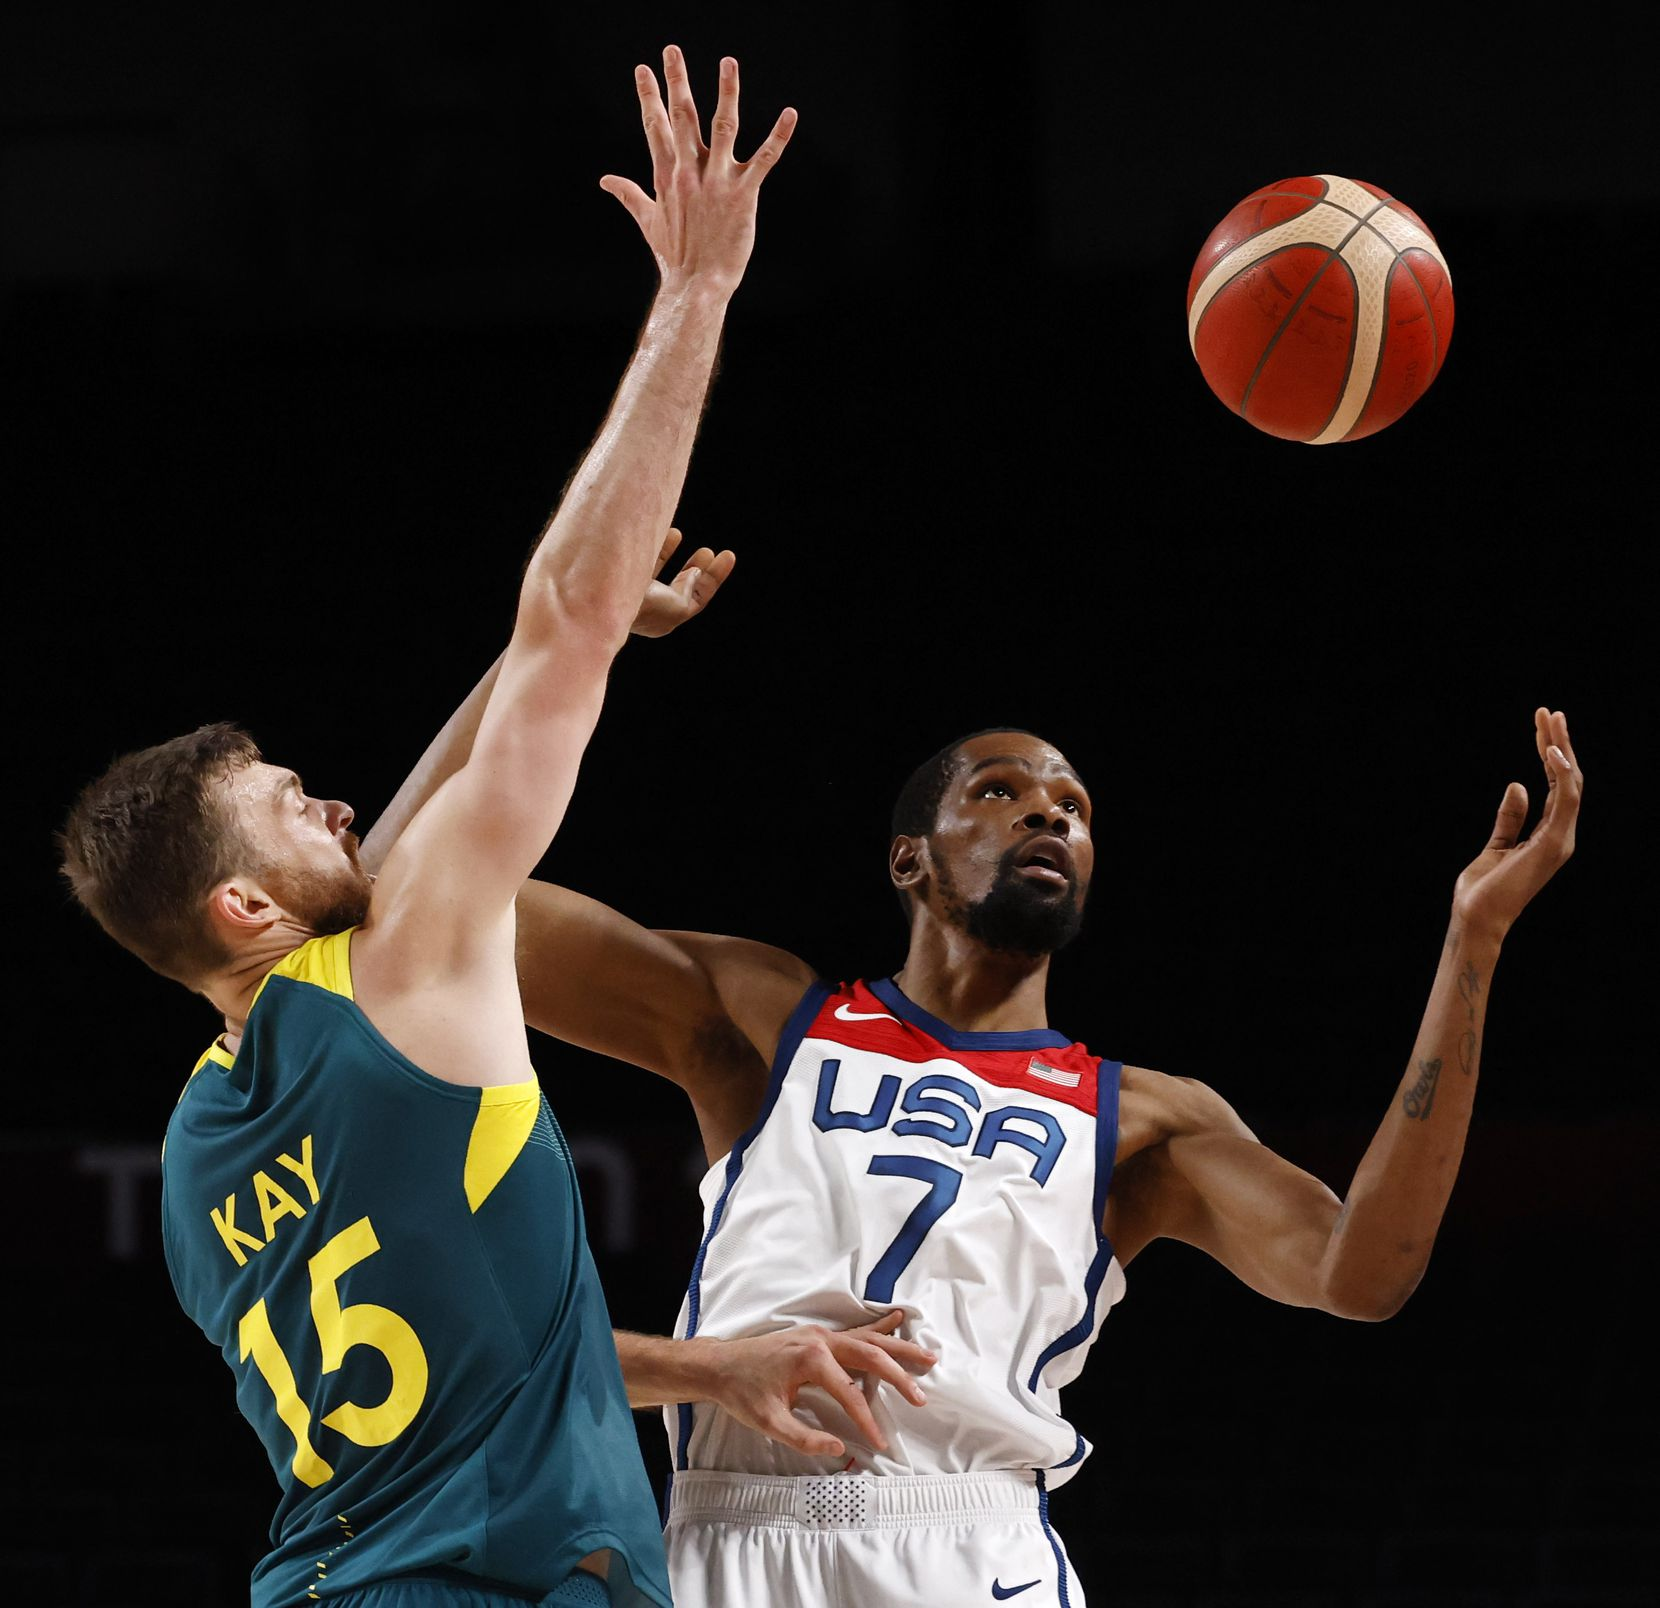 USA's Kevin Durant (7) attempts to gain control of the ball as he is defended by Australia's Nic Kay (15) during the first half of a men's basketball semifinal at the postponed 2020 Tokyo Olympics at Saitama Super Arena, on Thursday, August 5, 2021, in Saitama, Japan. USA defeated Australia 97-78 to advance to the gold medal game. (Vernon Bryant/The Dallas Morning News)